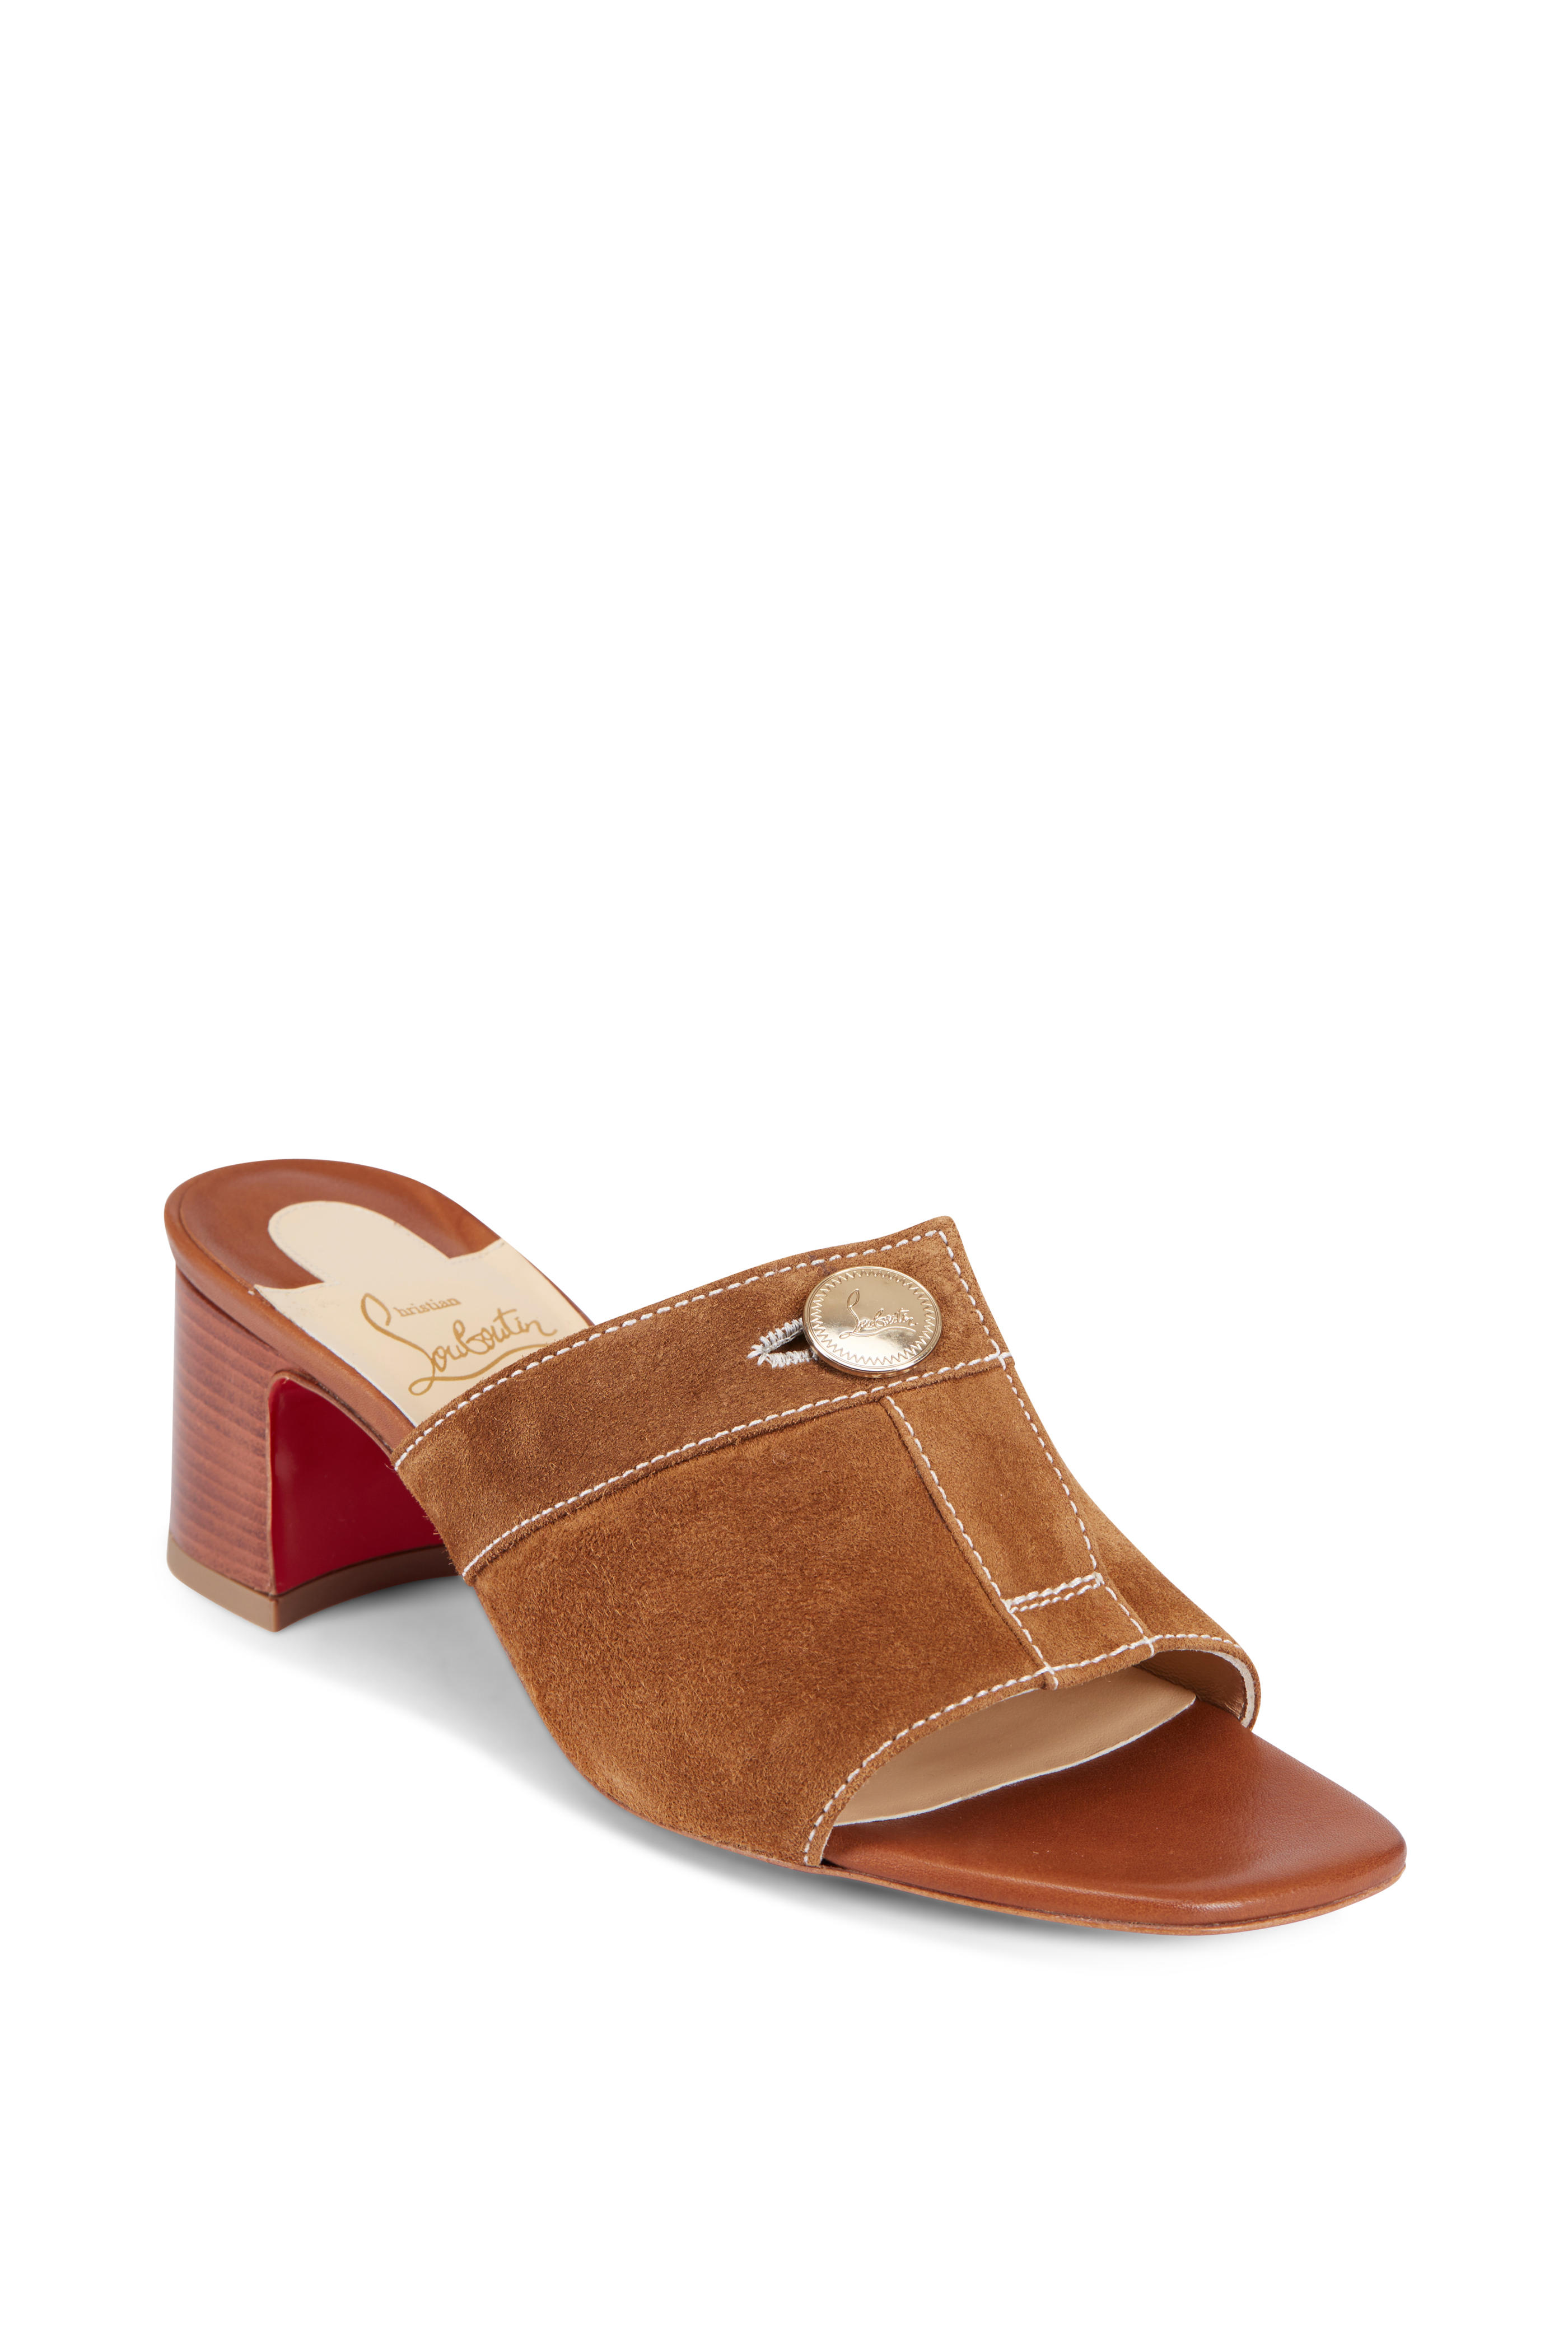 detailed look e9323 c6f22 Christian Louboutin - Dechirago Tan Suede Mule, 55mm ...